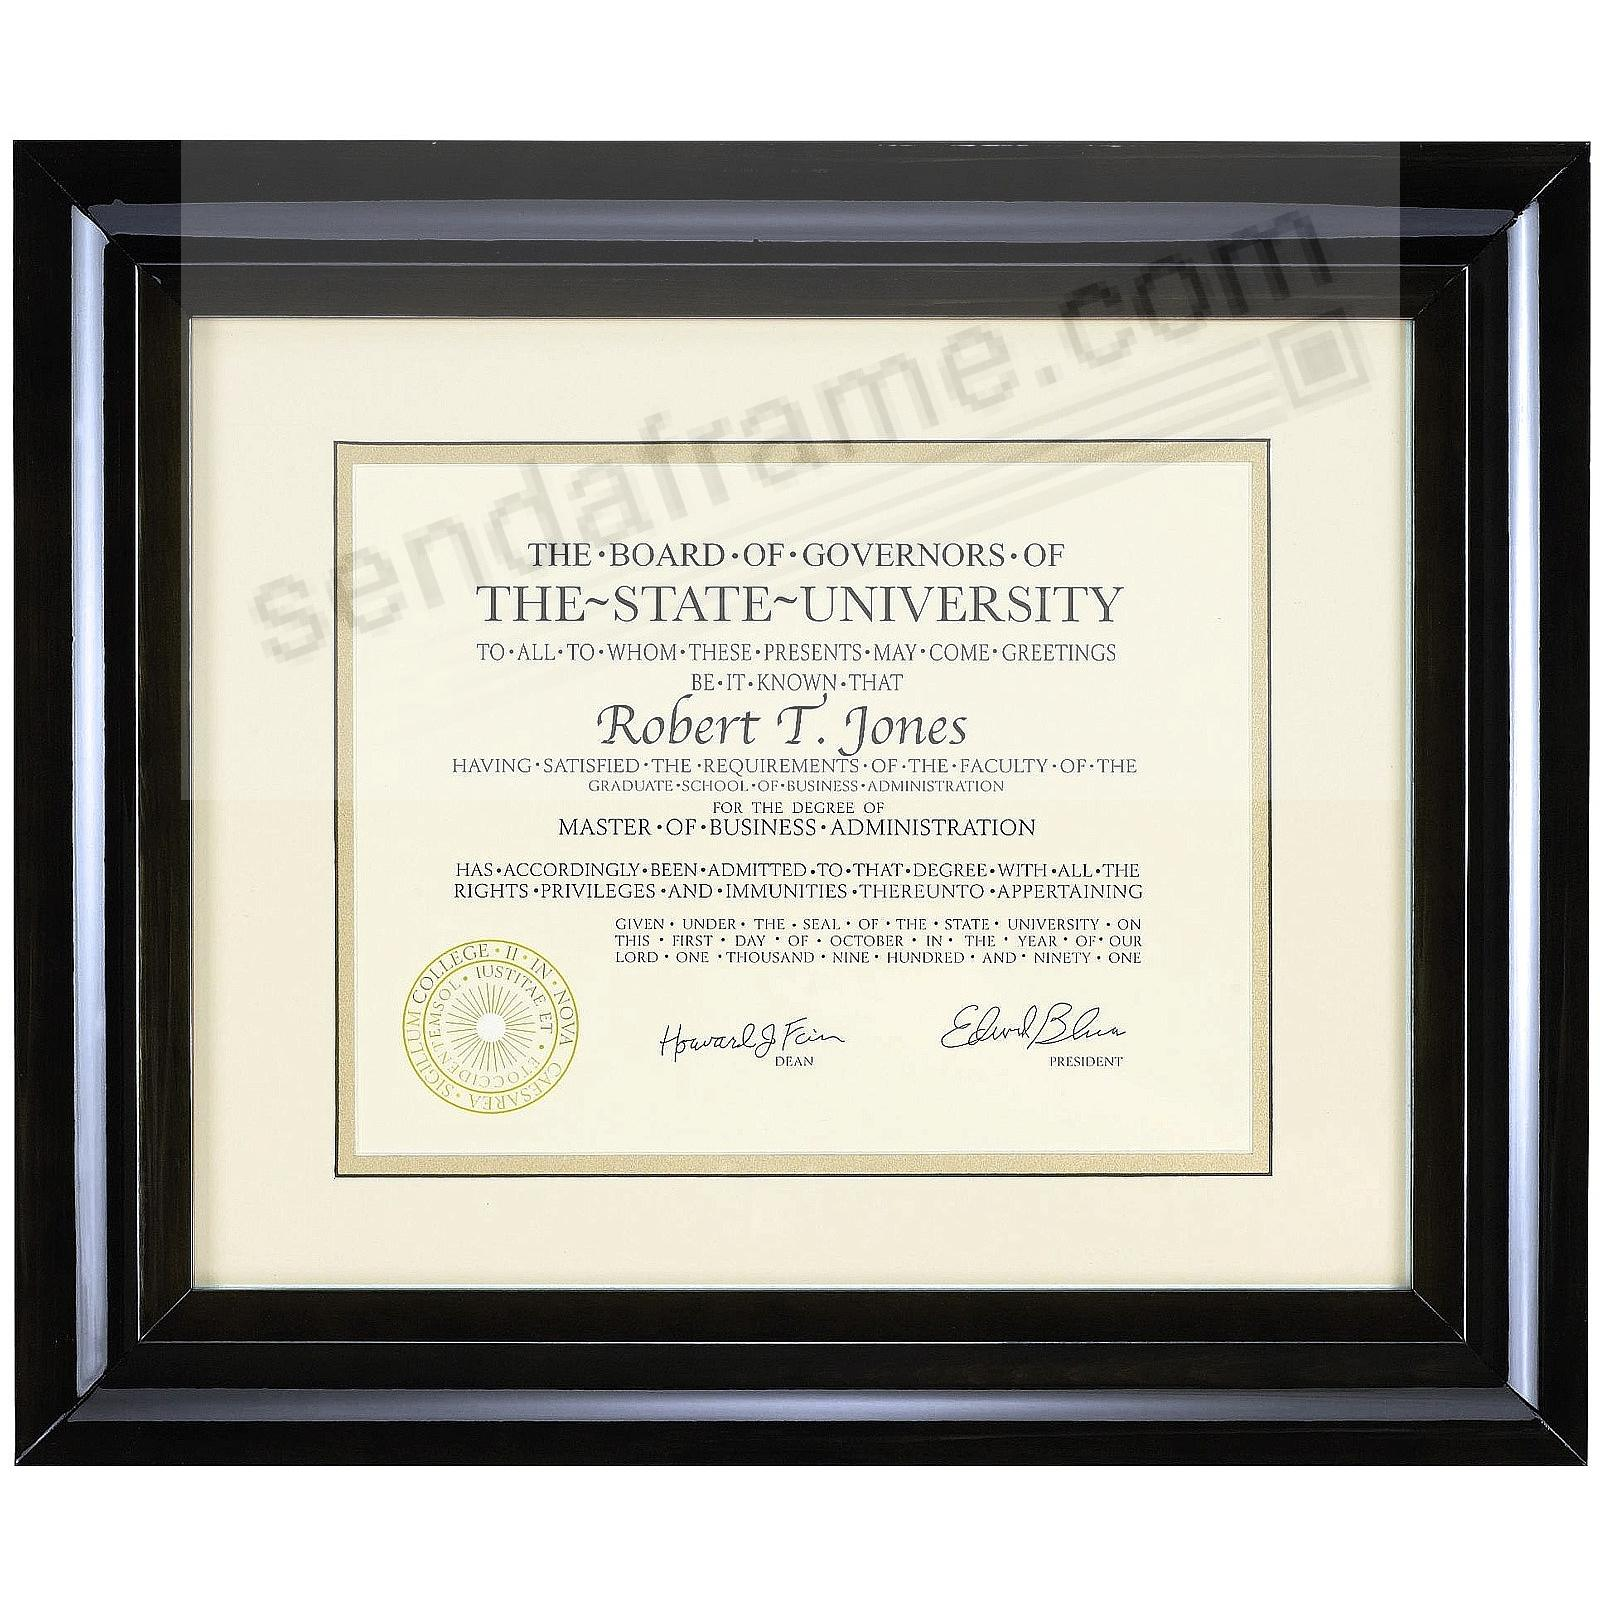 HAMPTON luxe black matted 15x12 / 11x8½ certificate frame by Nielsen®